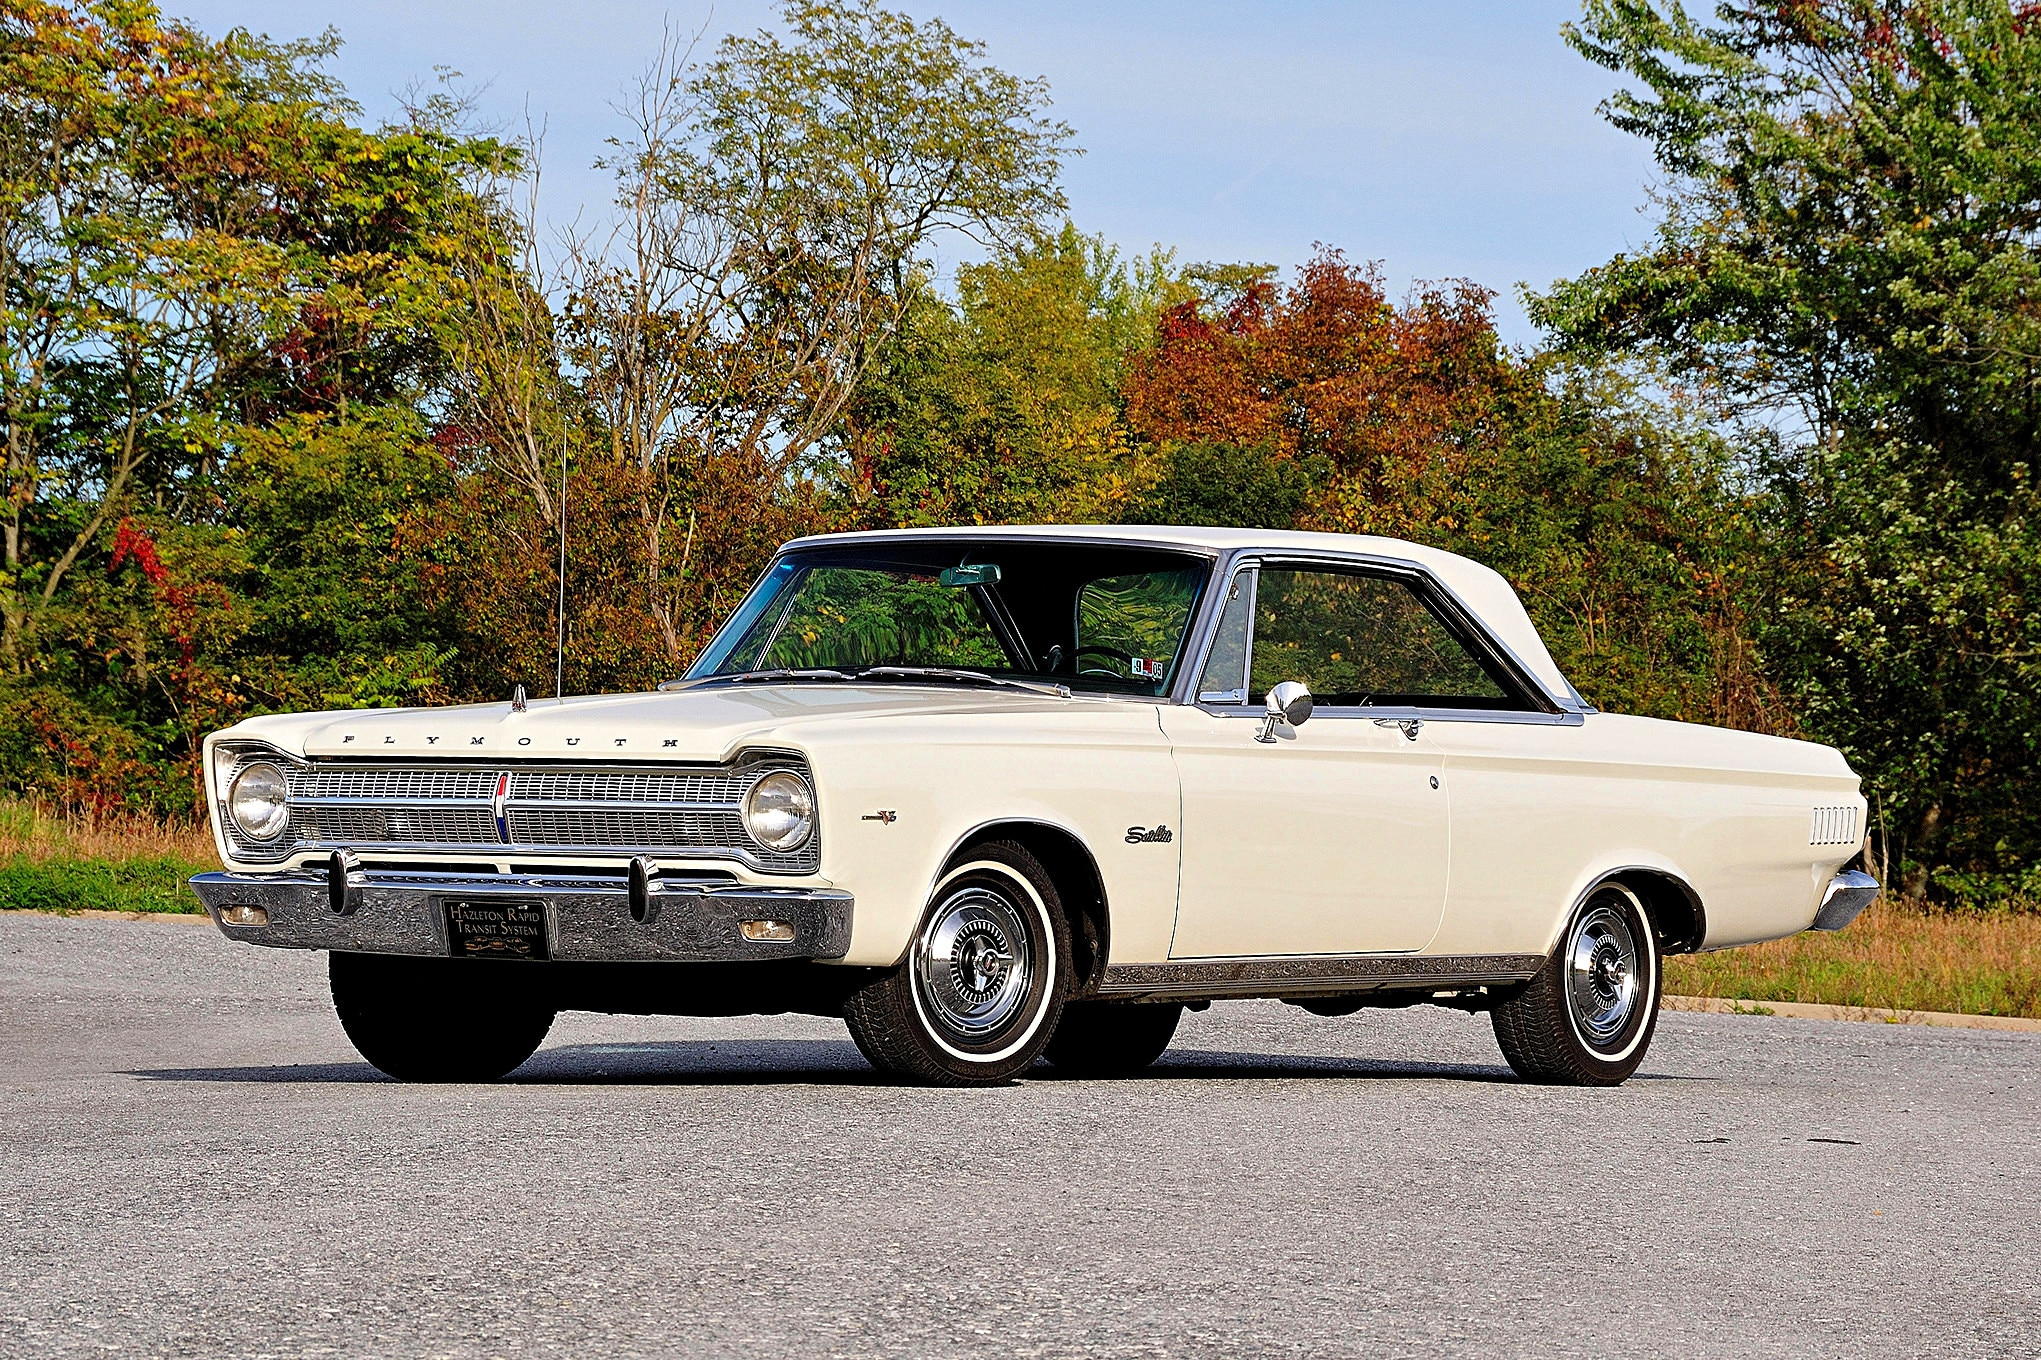 A Wedge Powered 1965 Plymouth Satellite Resurrected As A